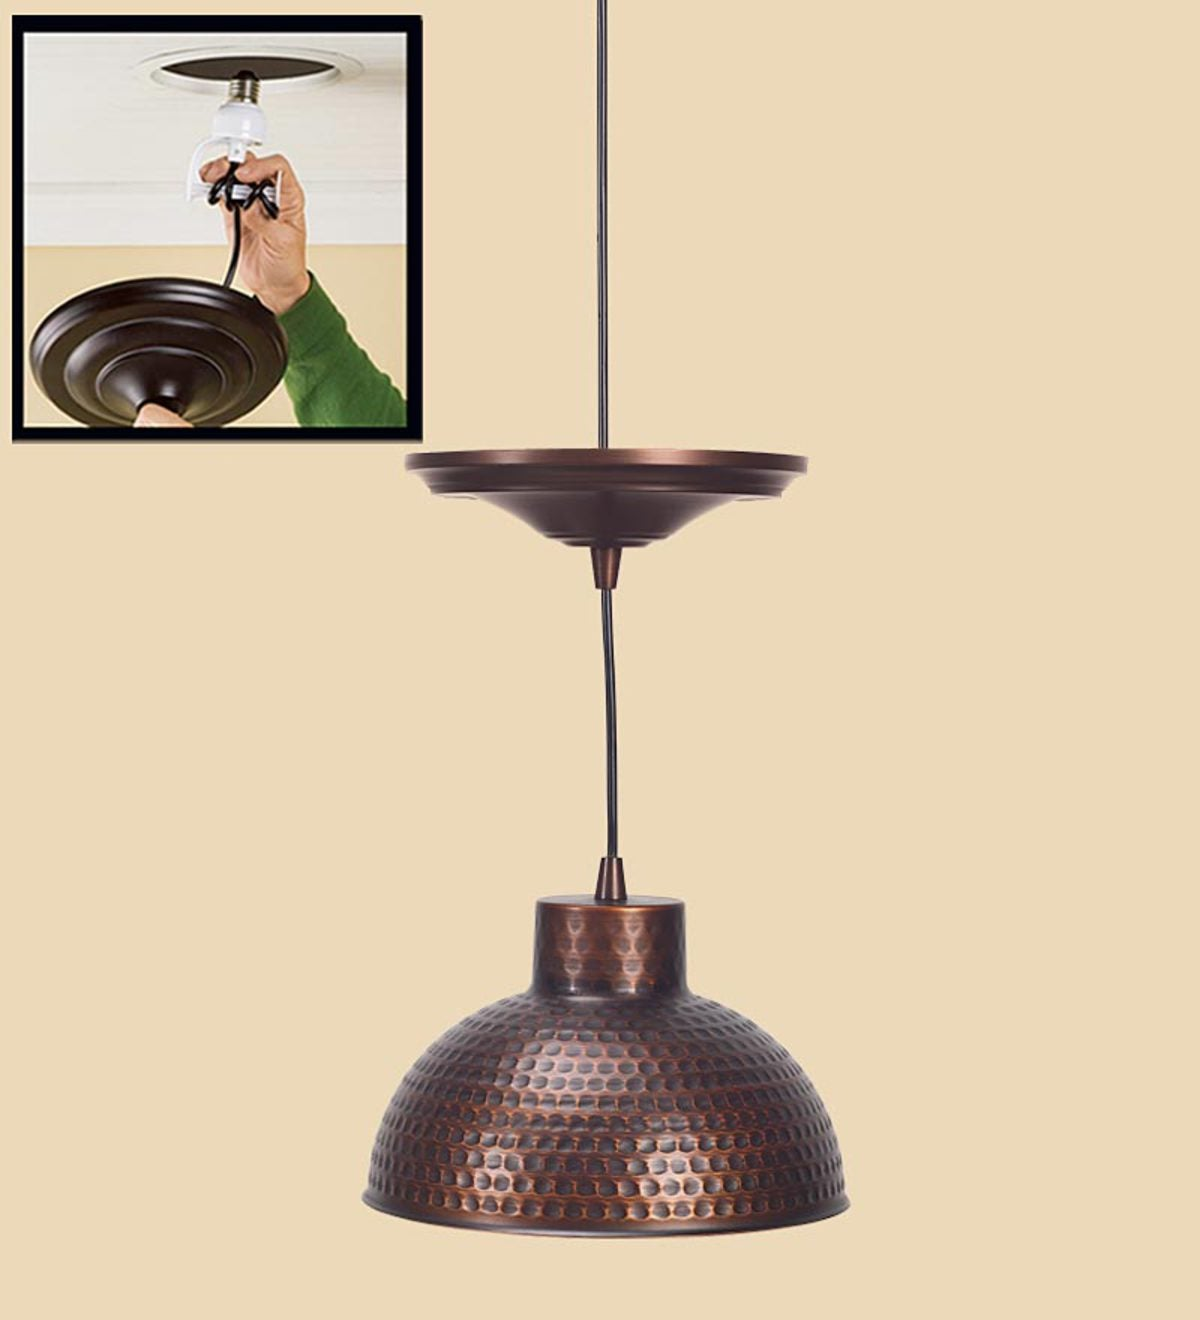 In Antique Pendant Lighting With Adjule Cord Hammered Copper